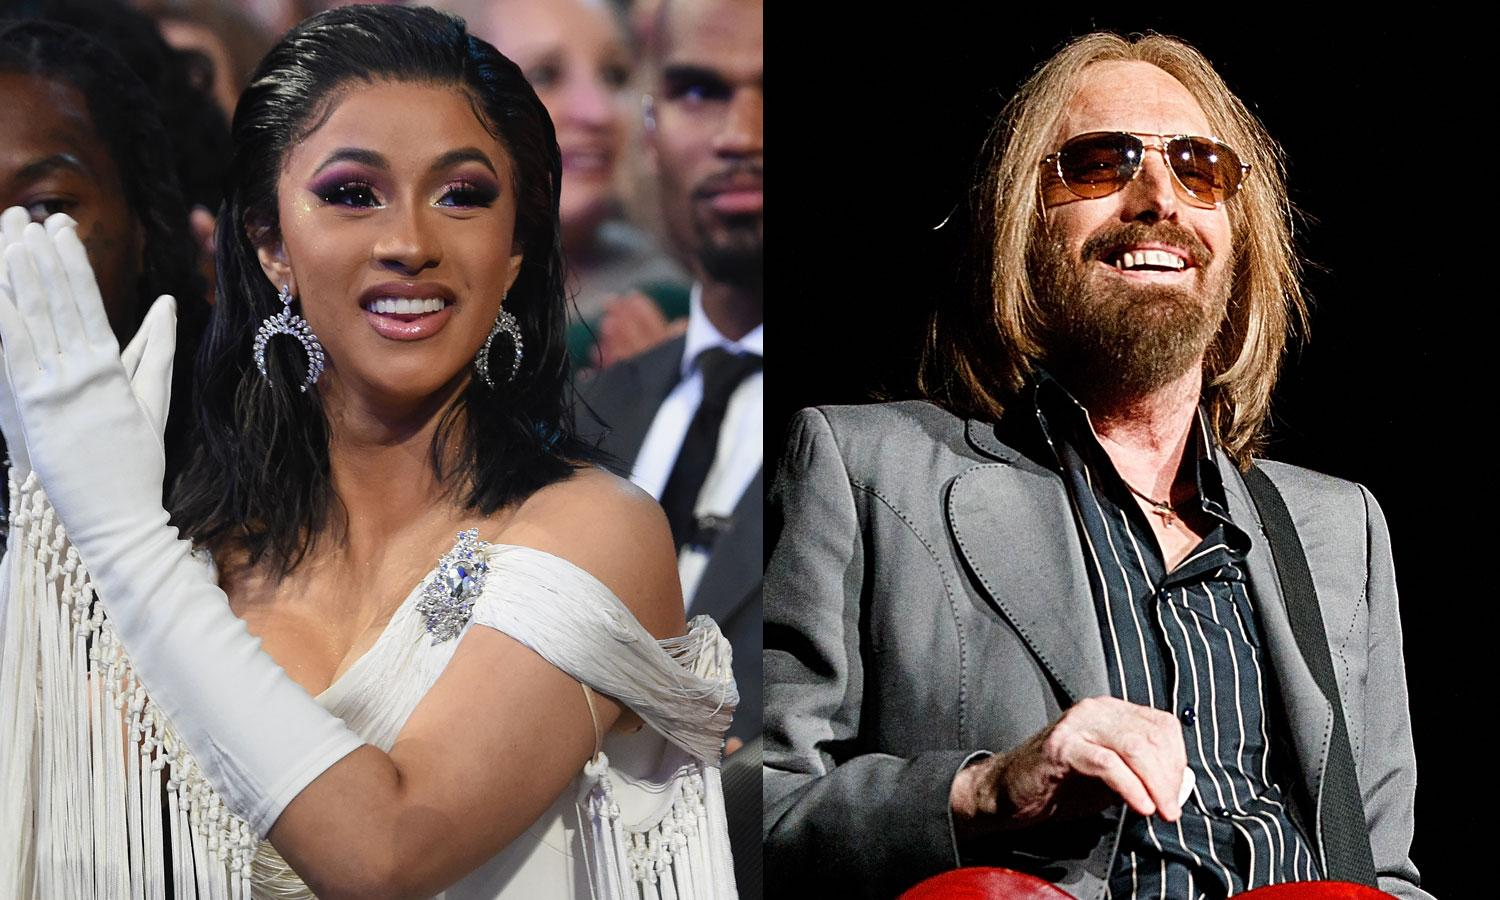 Cardi B Died: Cardi B Thanks Tom Petty For Flowers 1 Year After His Death